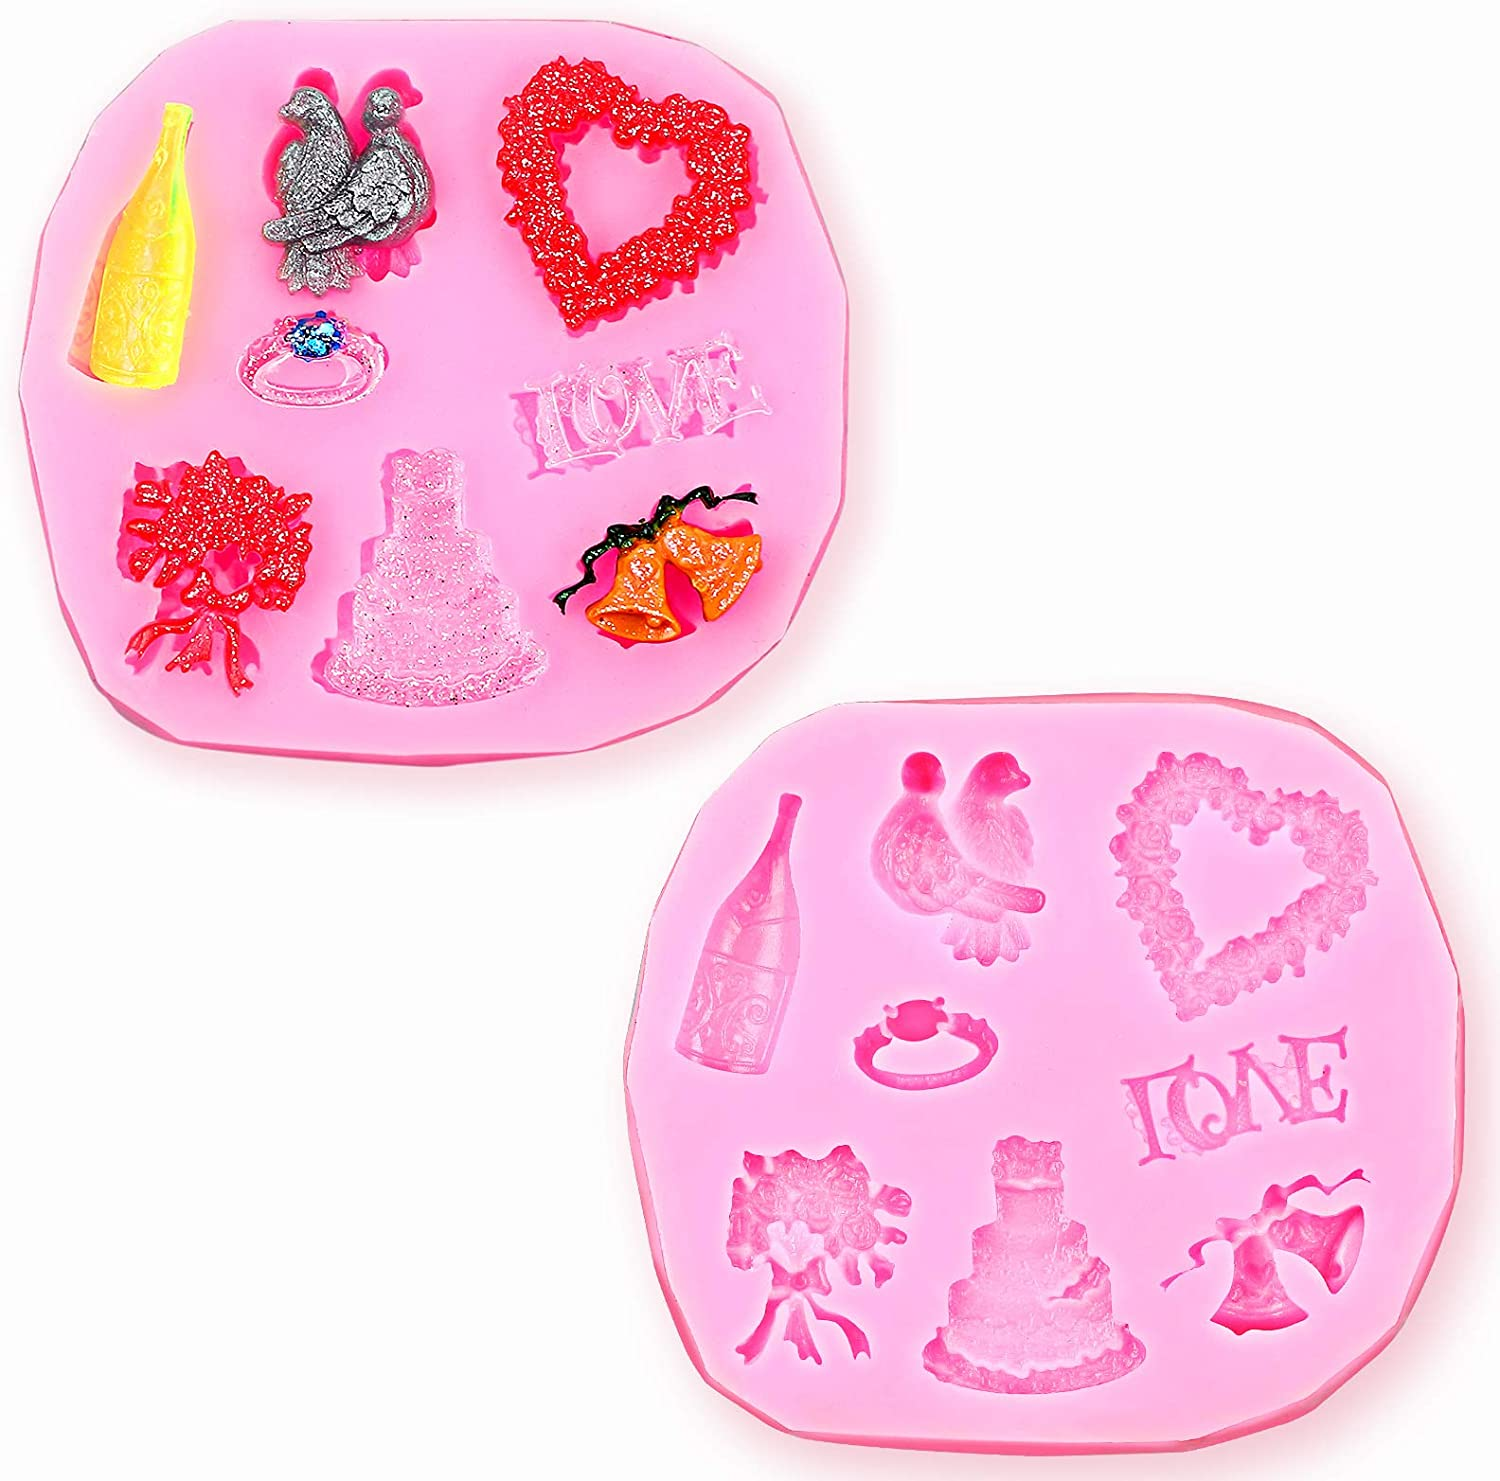 2 Pieces Micro Mini Love Wedding Anniversary Engagement Silicone Mould Fondant Cake Icing Mold Cake Bell Champagne Ring Jelly Sugar Candy Chocolate Decor for Valentine's Day Wedding Christmas Decor